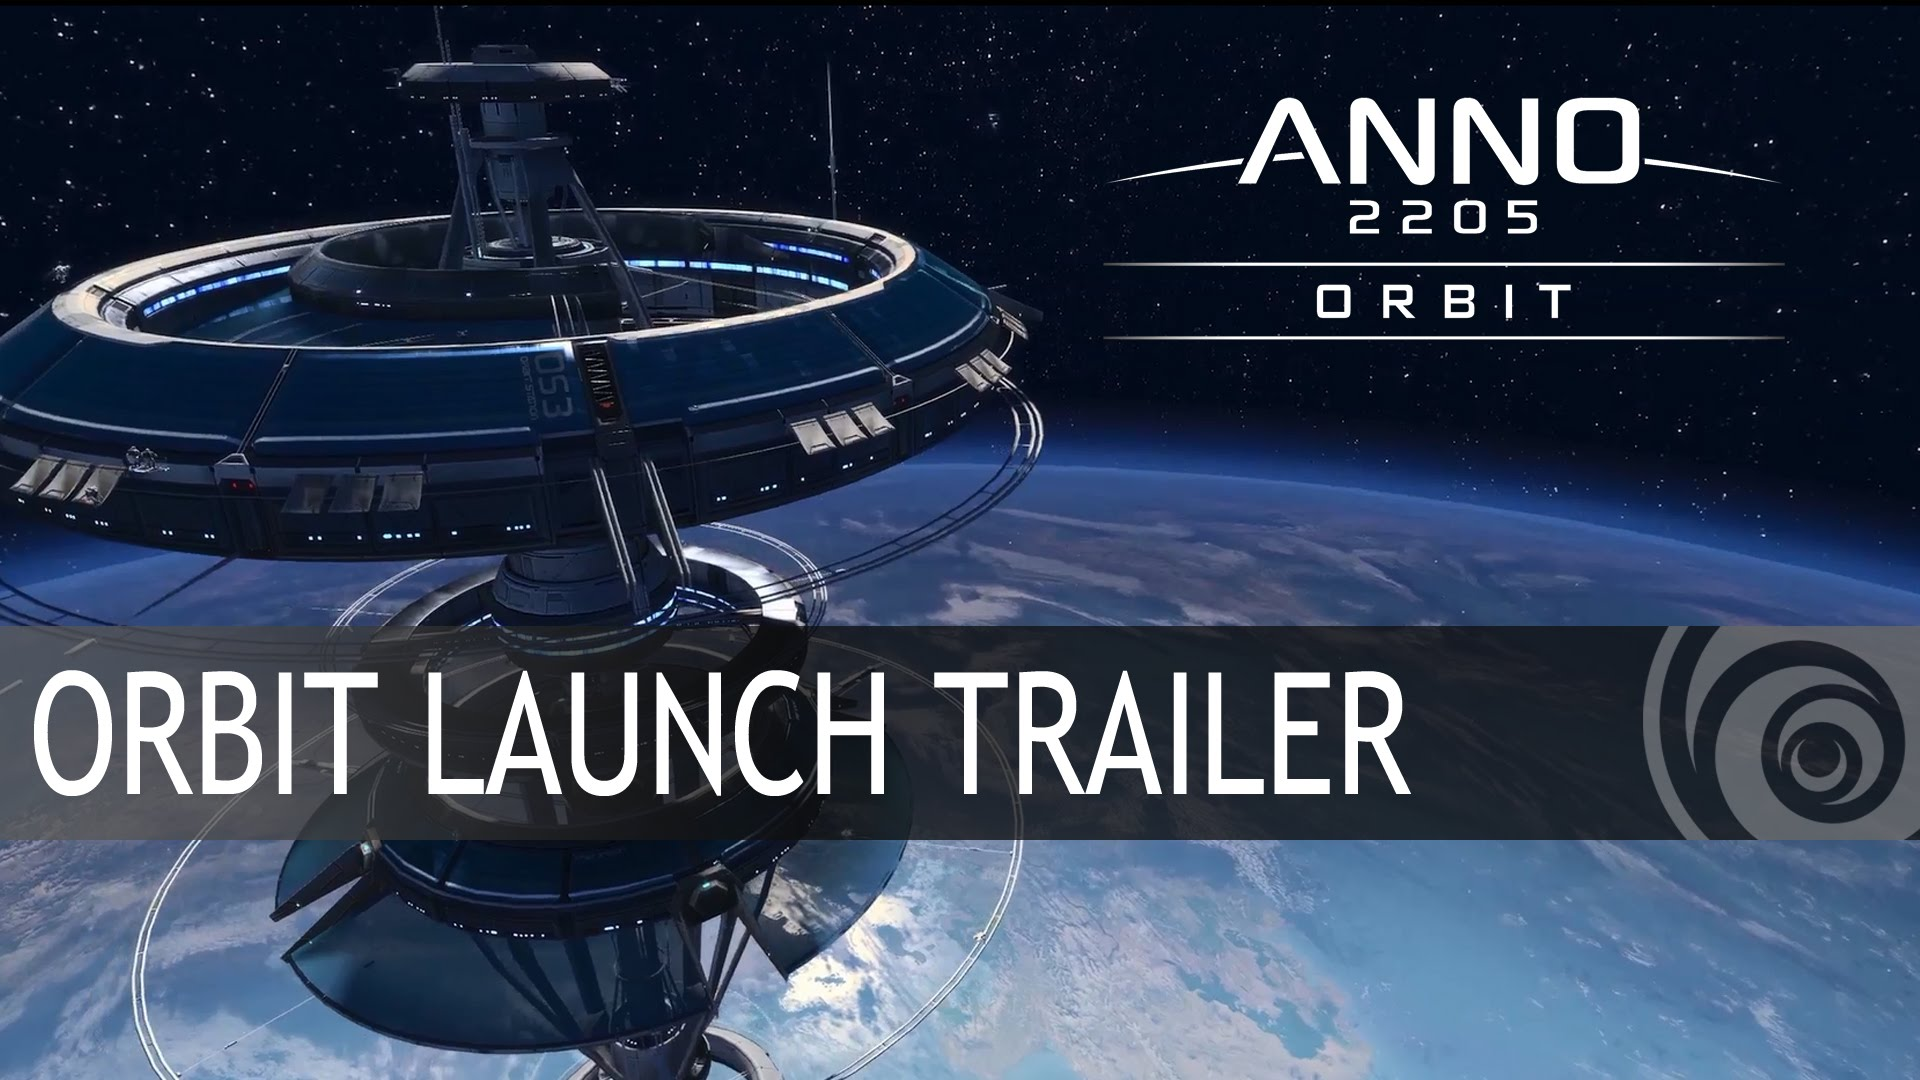 ANNO 2205: ORBIT DLC LAUNCH TRAILER